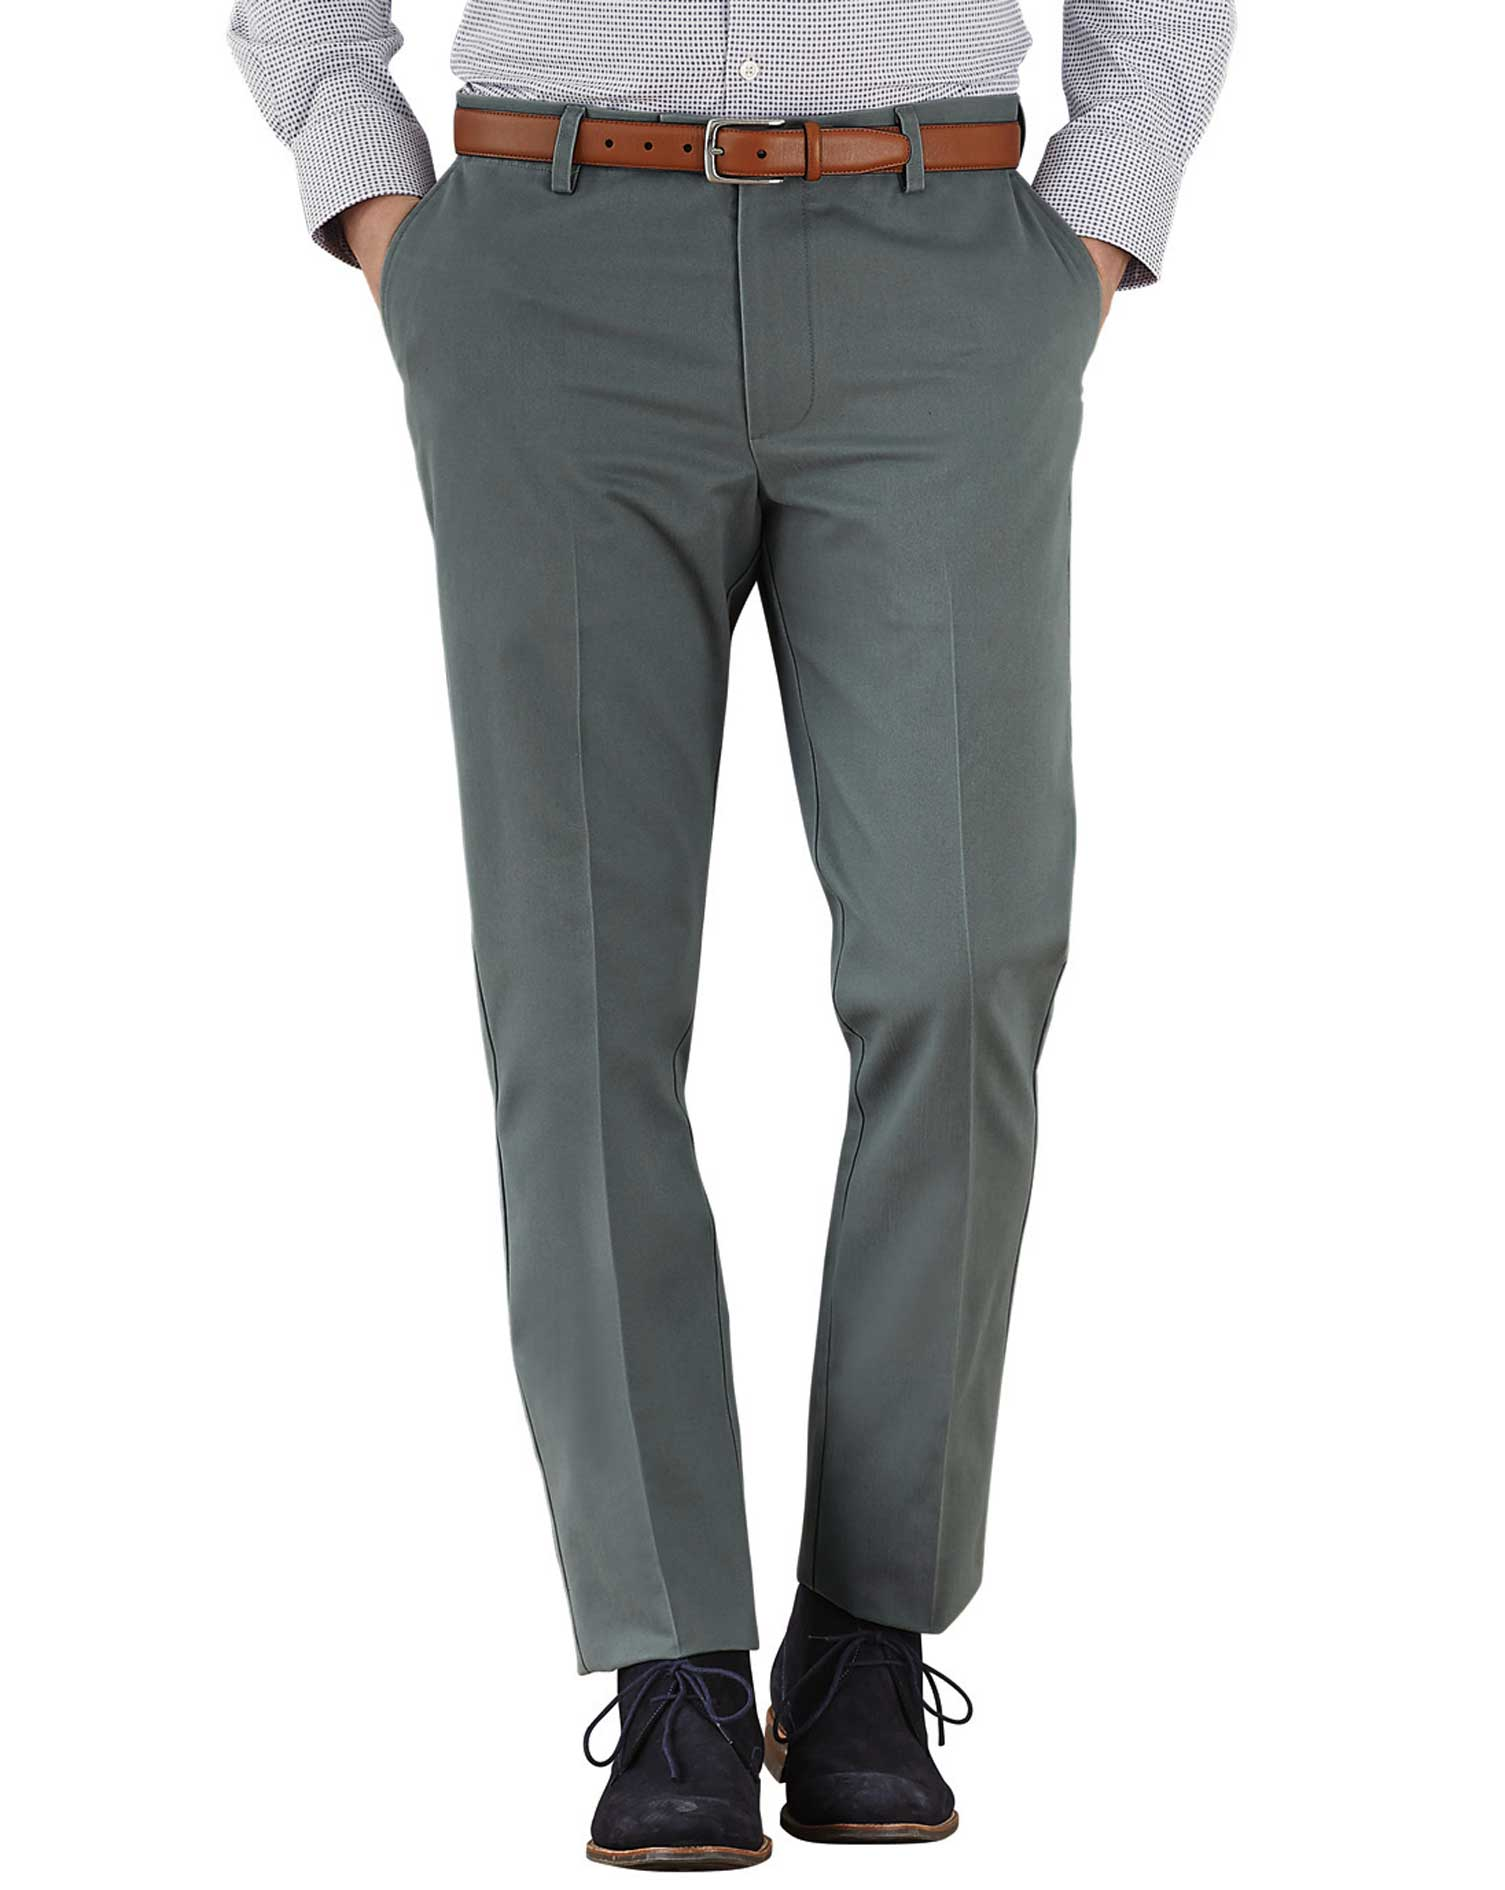 Grey Extra Slim Fit Flat Front Non-Iron Cotton Chino Trousers Size W34 L29 by Charles Tyrwhitt